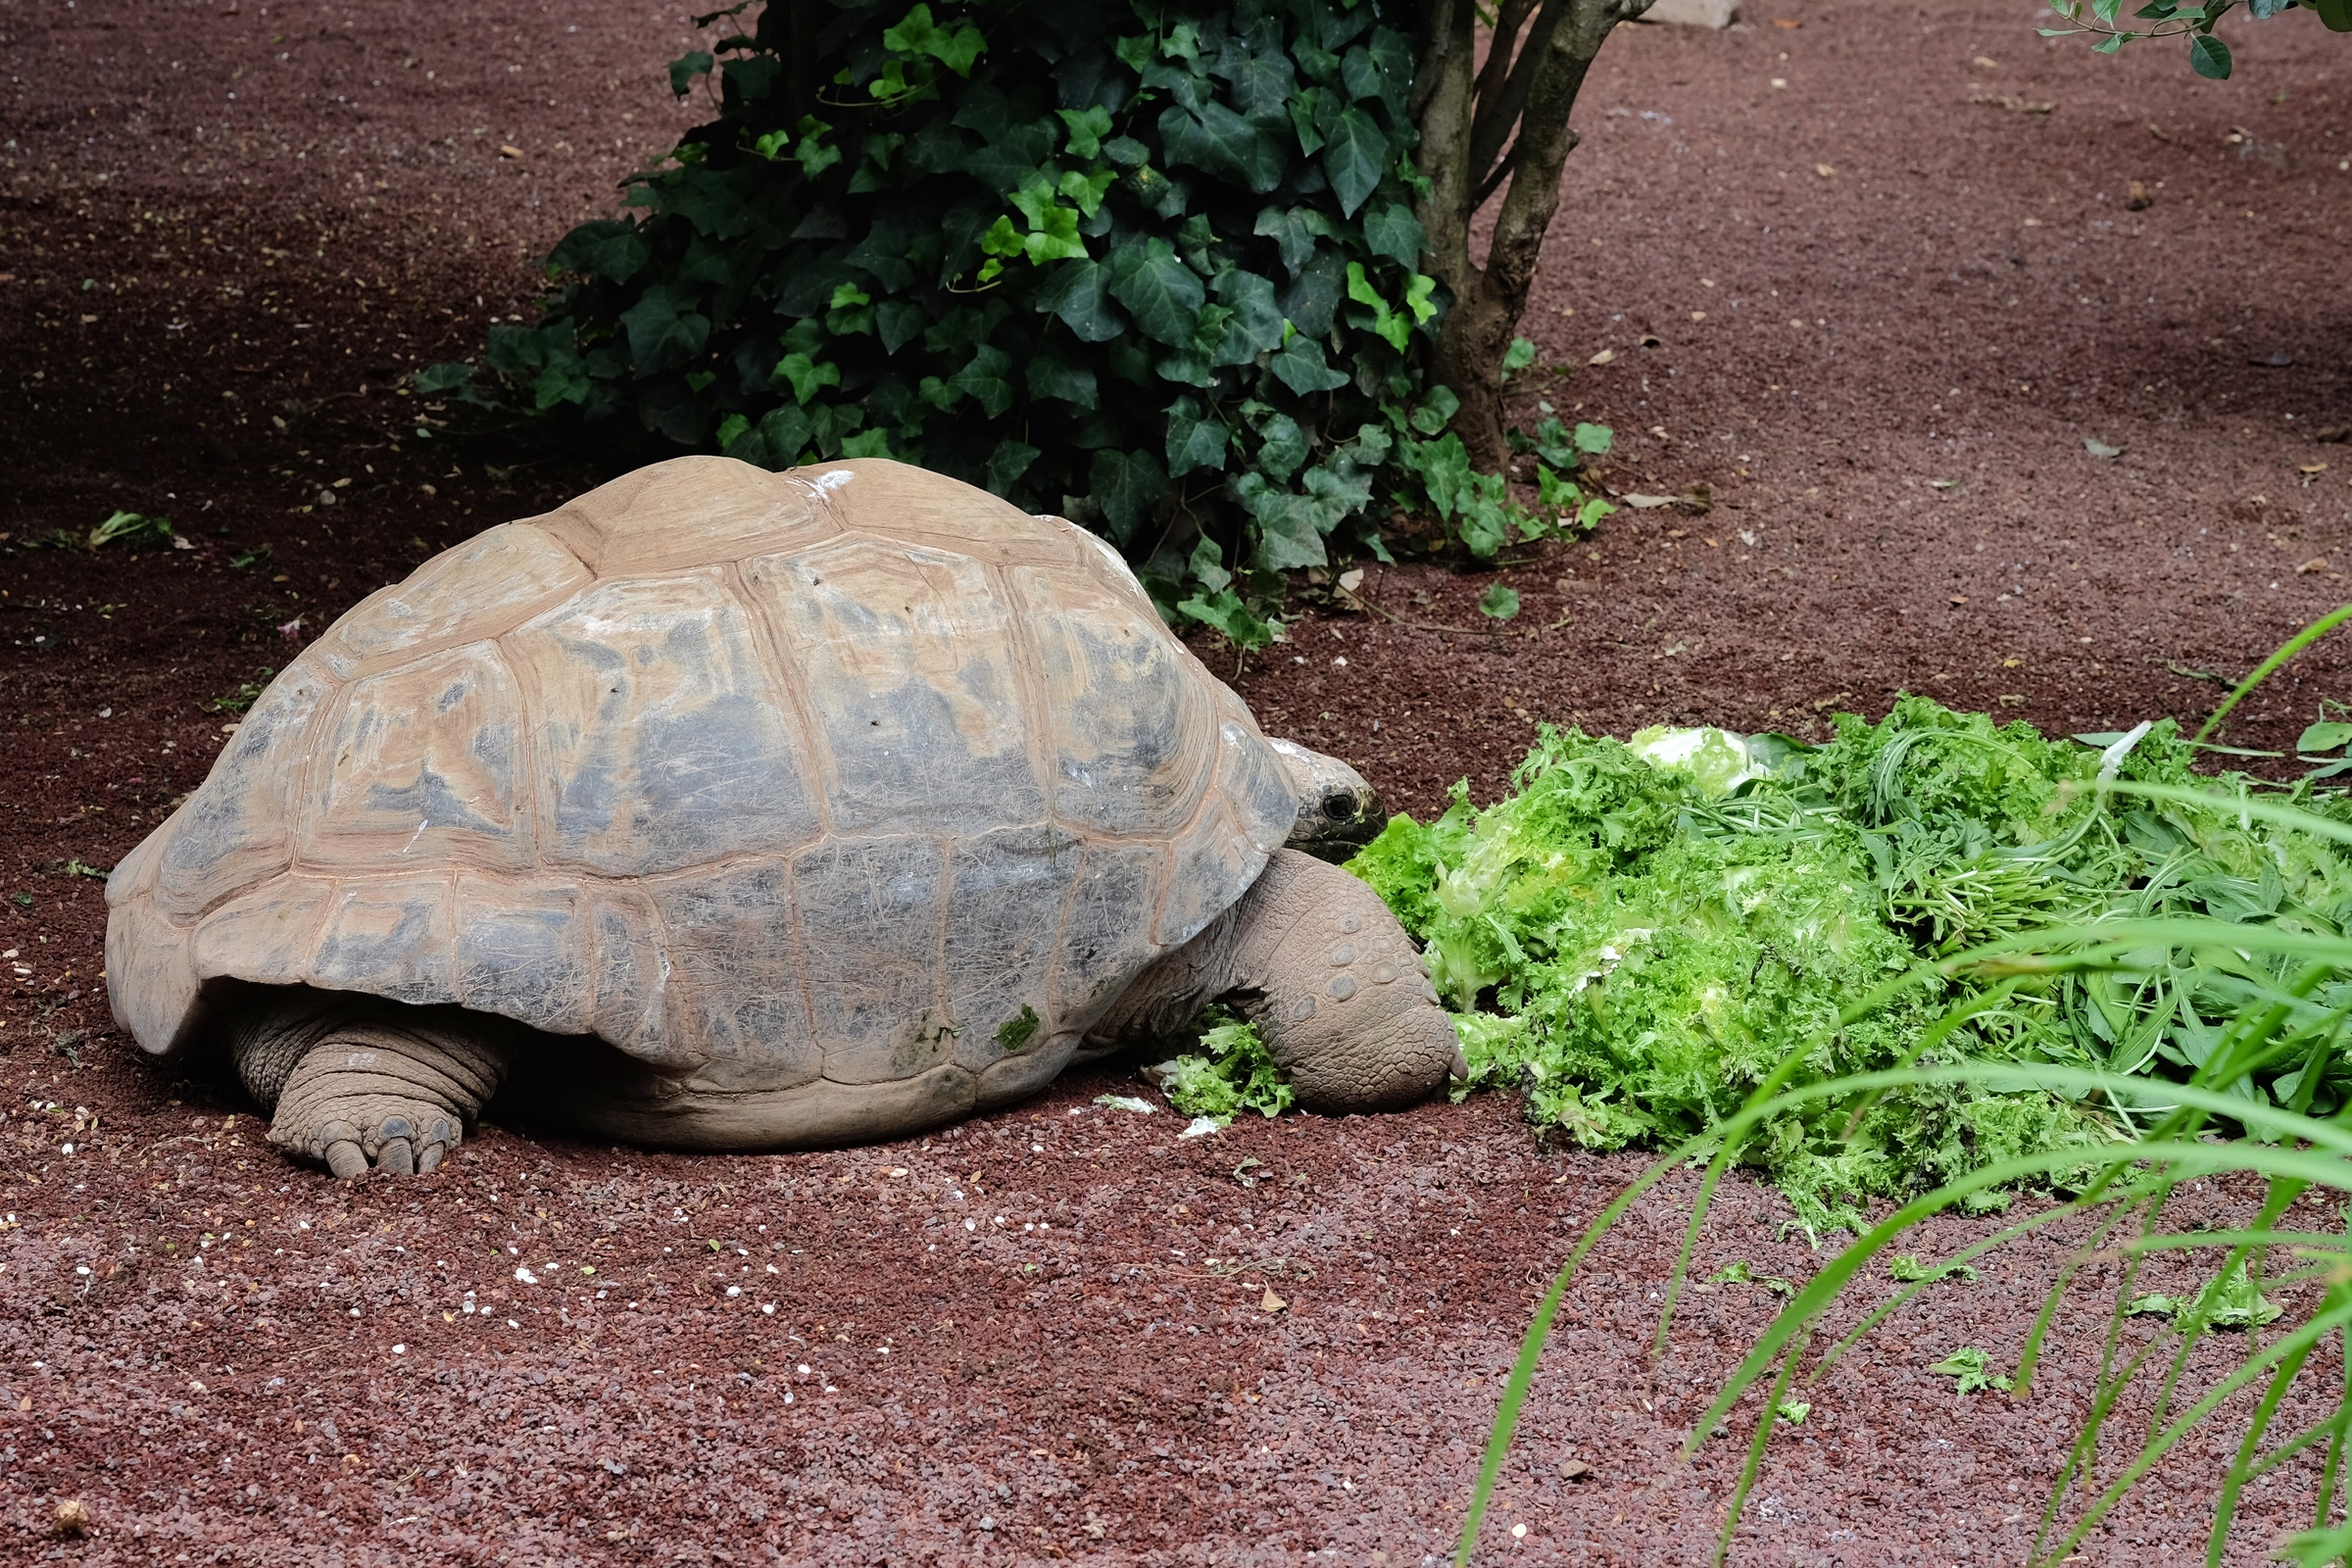 Rowan took this photo of a Giant Tortoise eating an Italian salad.